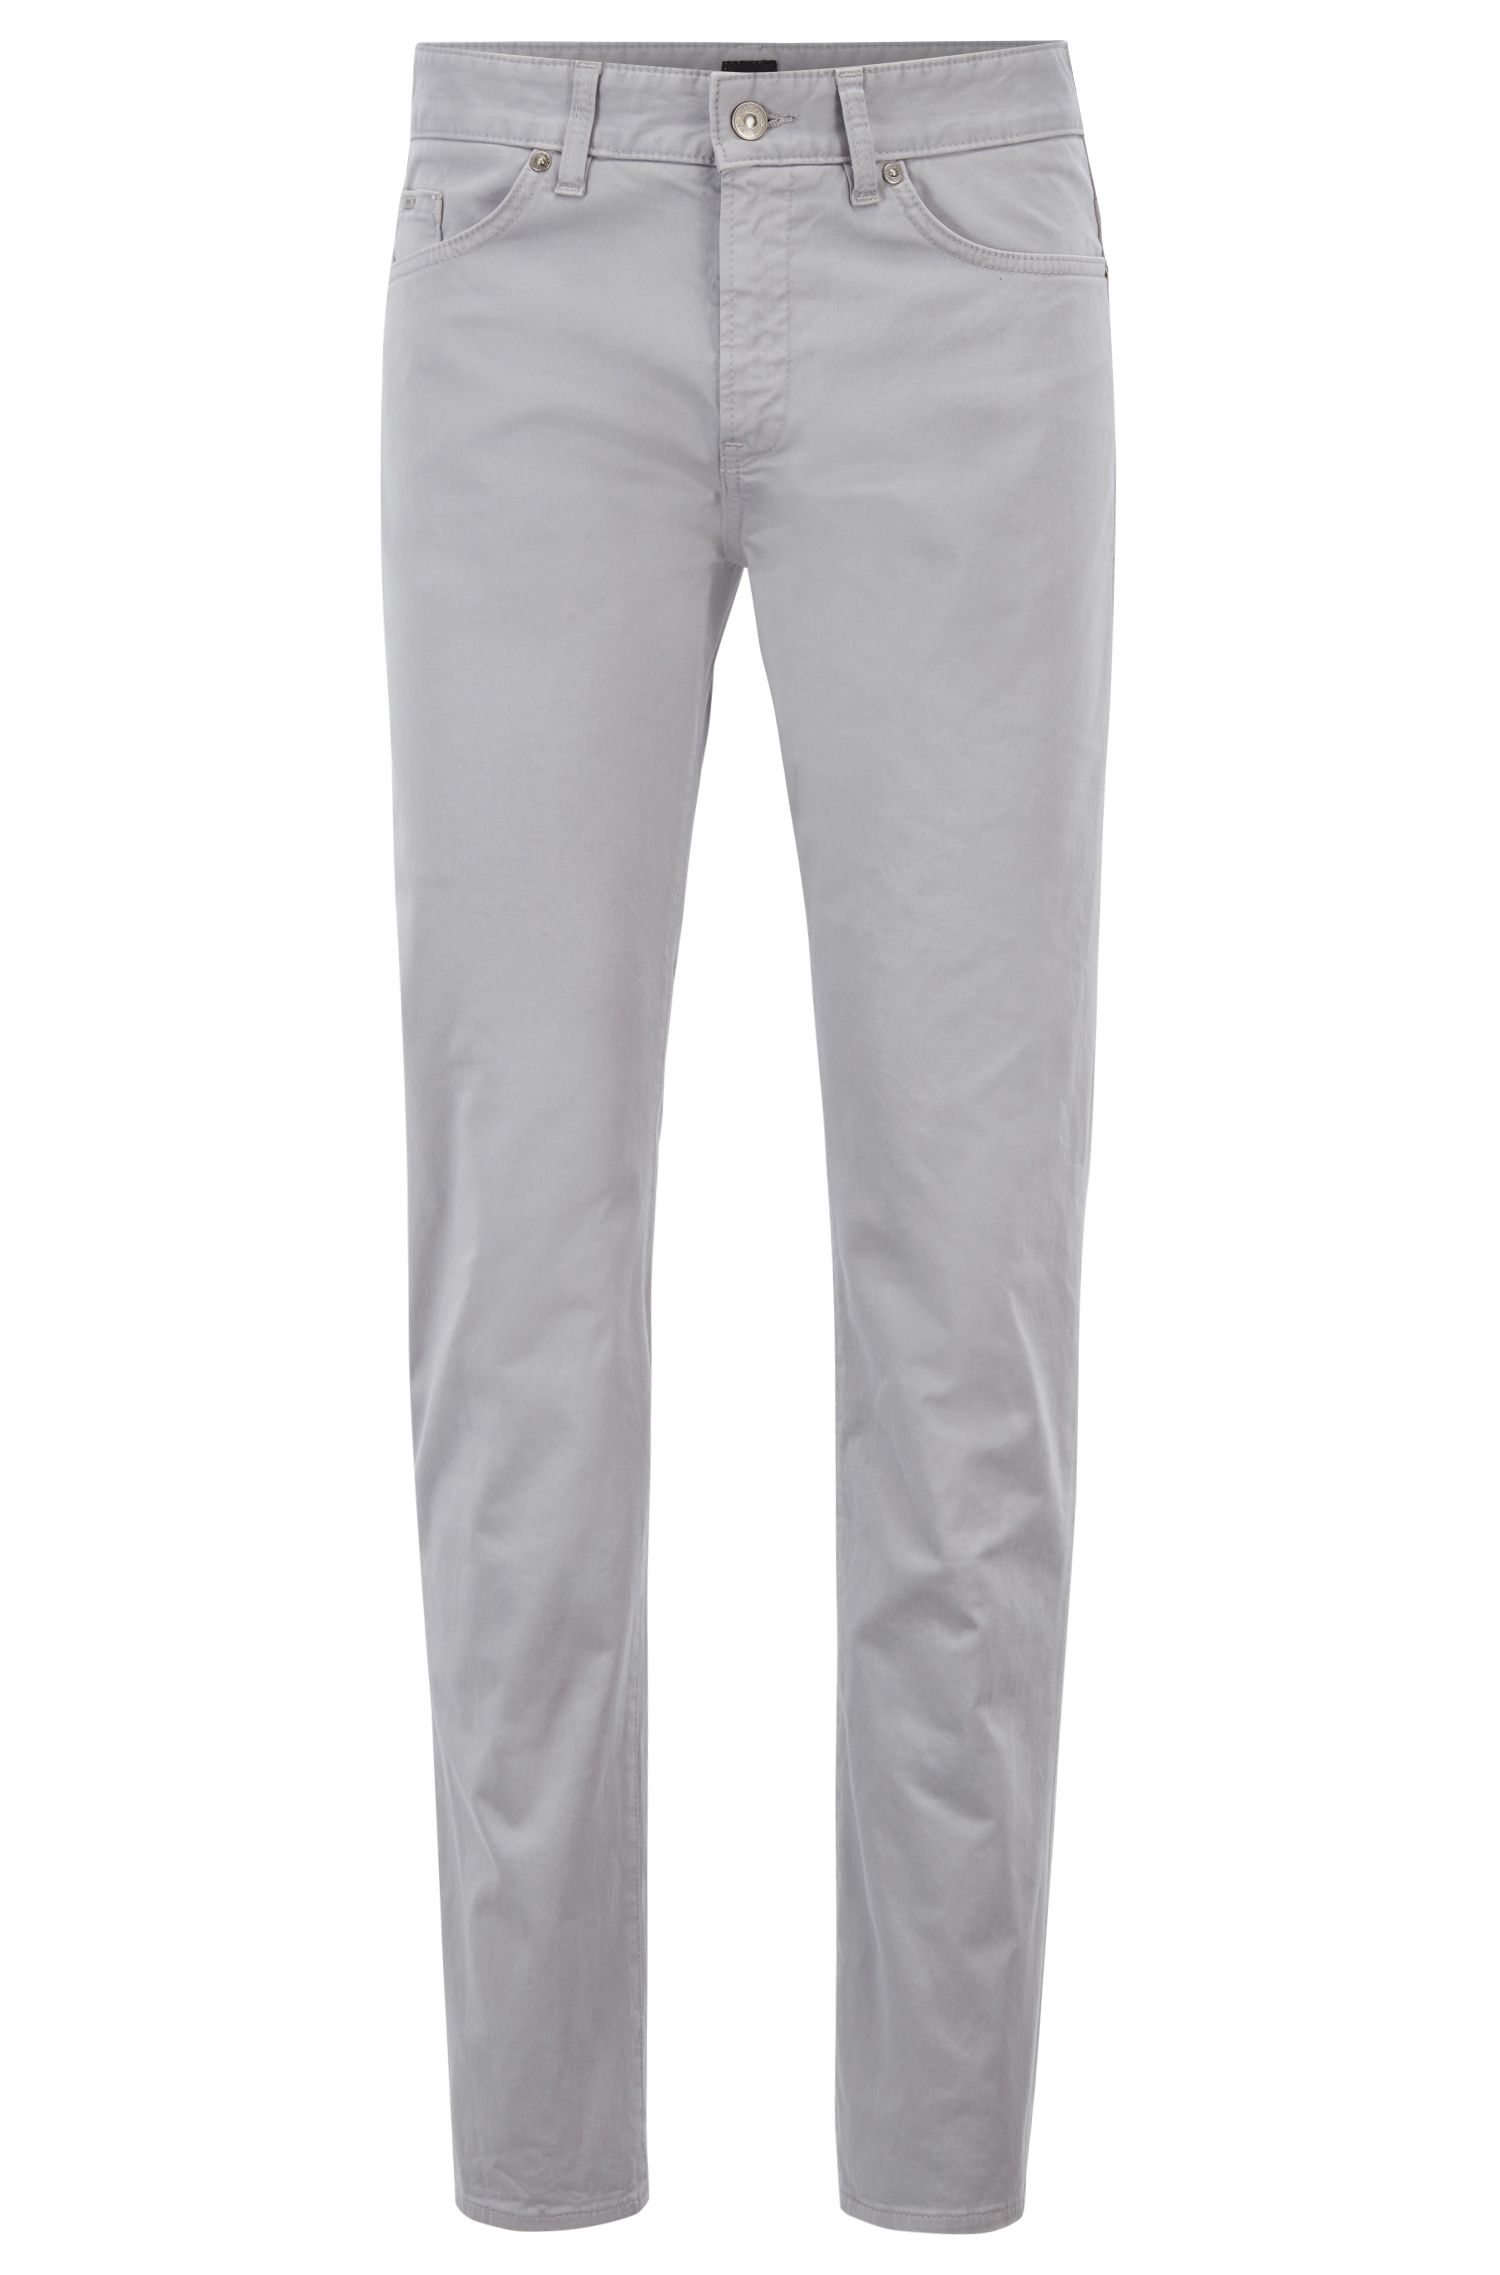 Slim-fit jeans in diamond-brushed satin denim, Silver